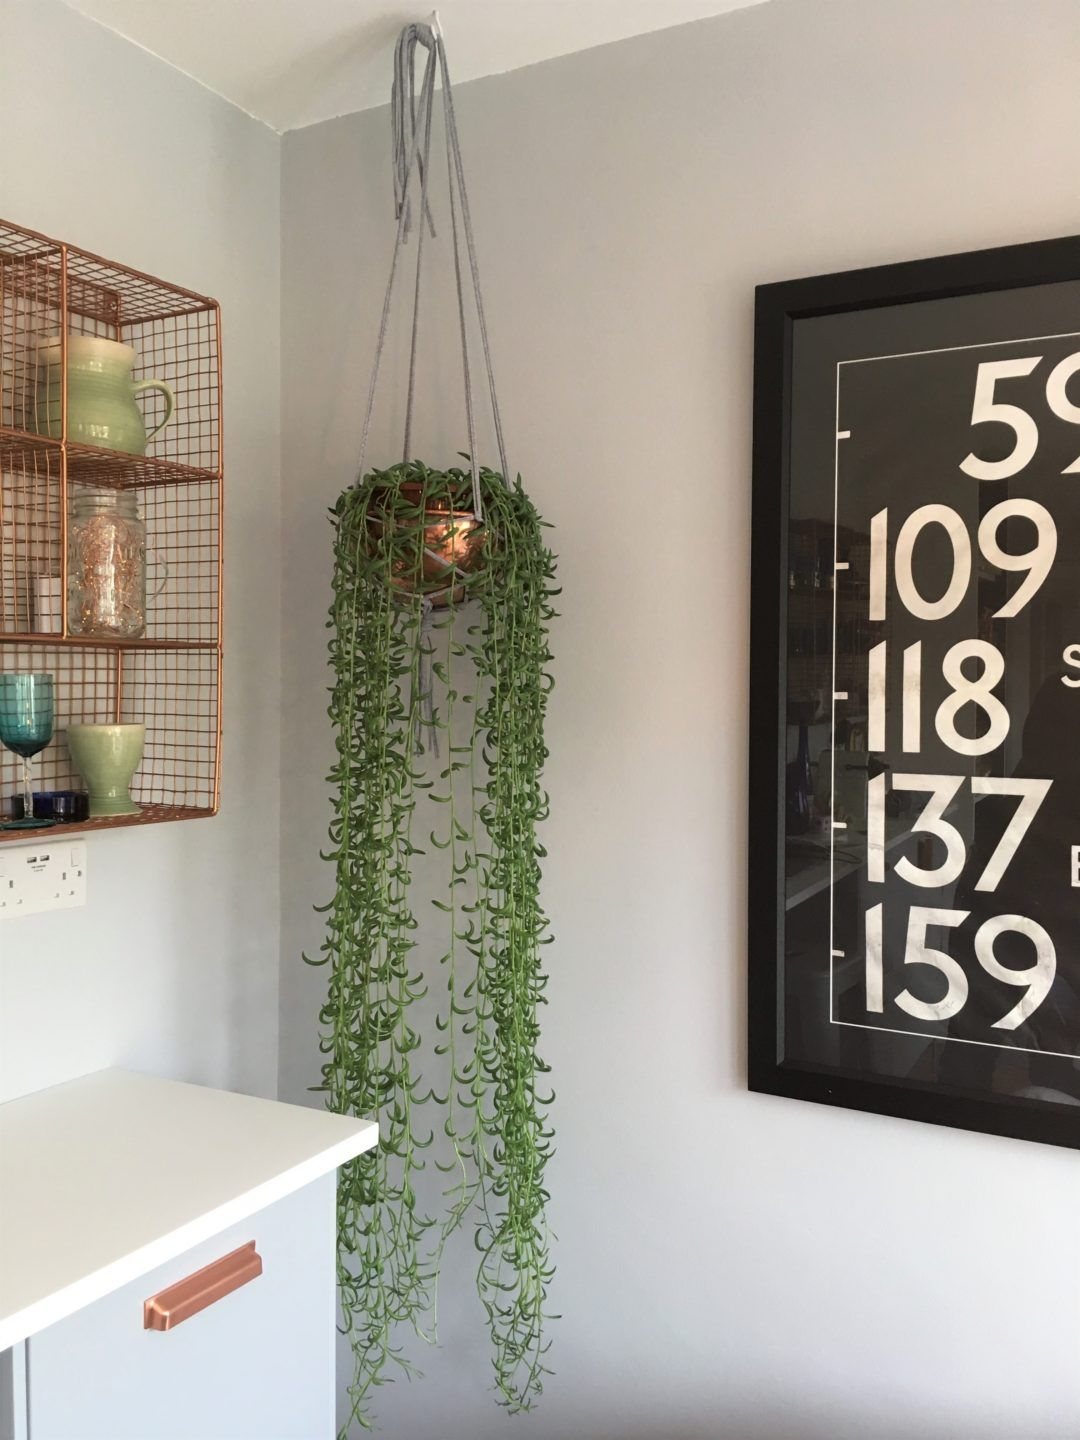 Step by step guide on how to make a simple easy plant hanger for a